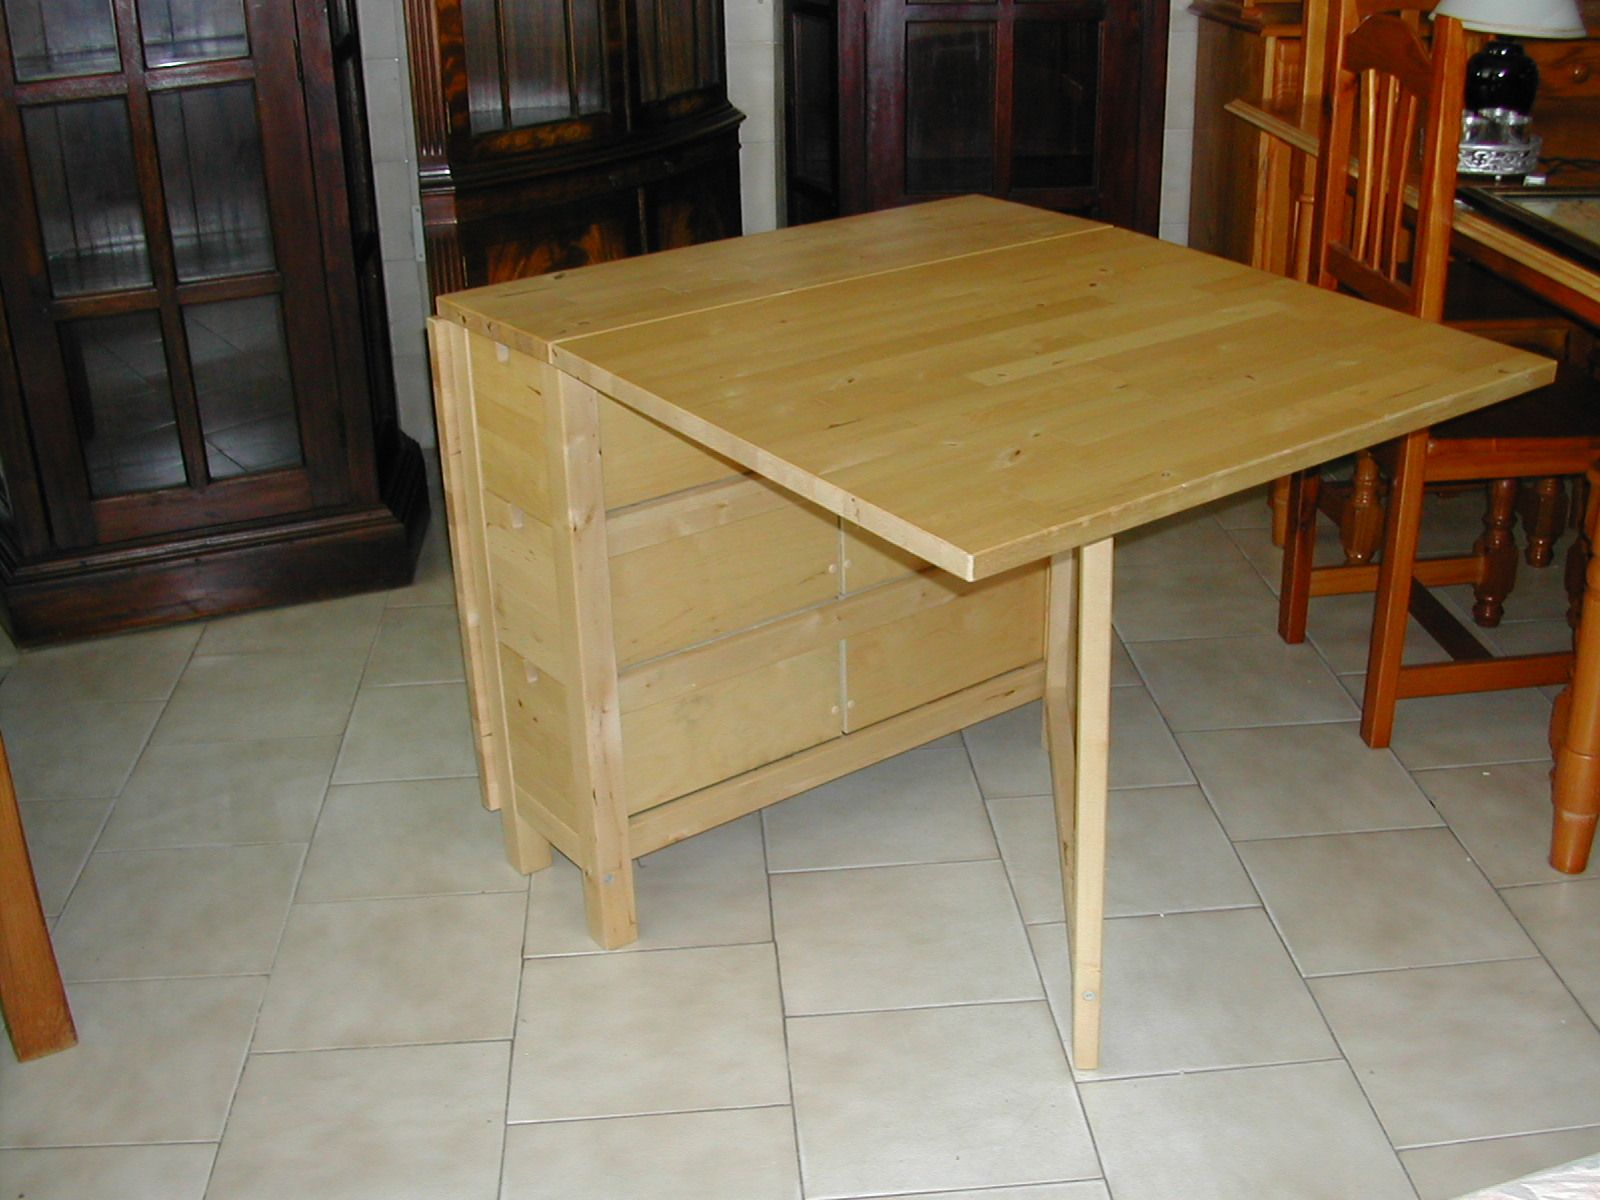 fold up dining room tables | Useful folding ikea table - I want to convert my existing ...